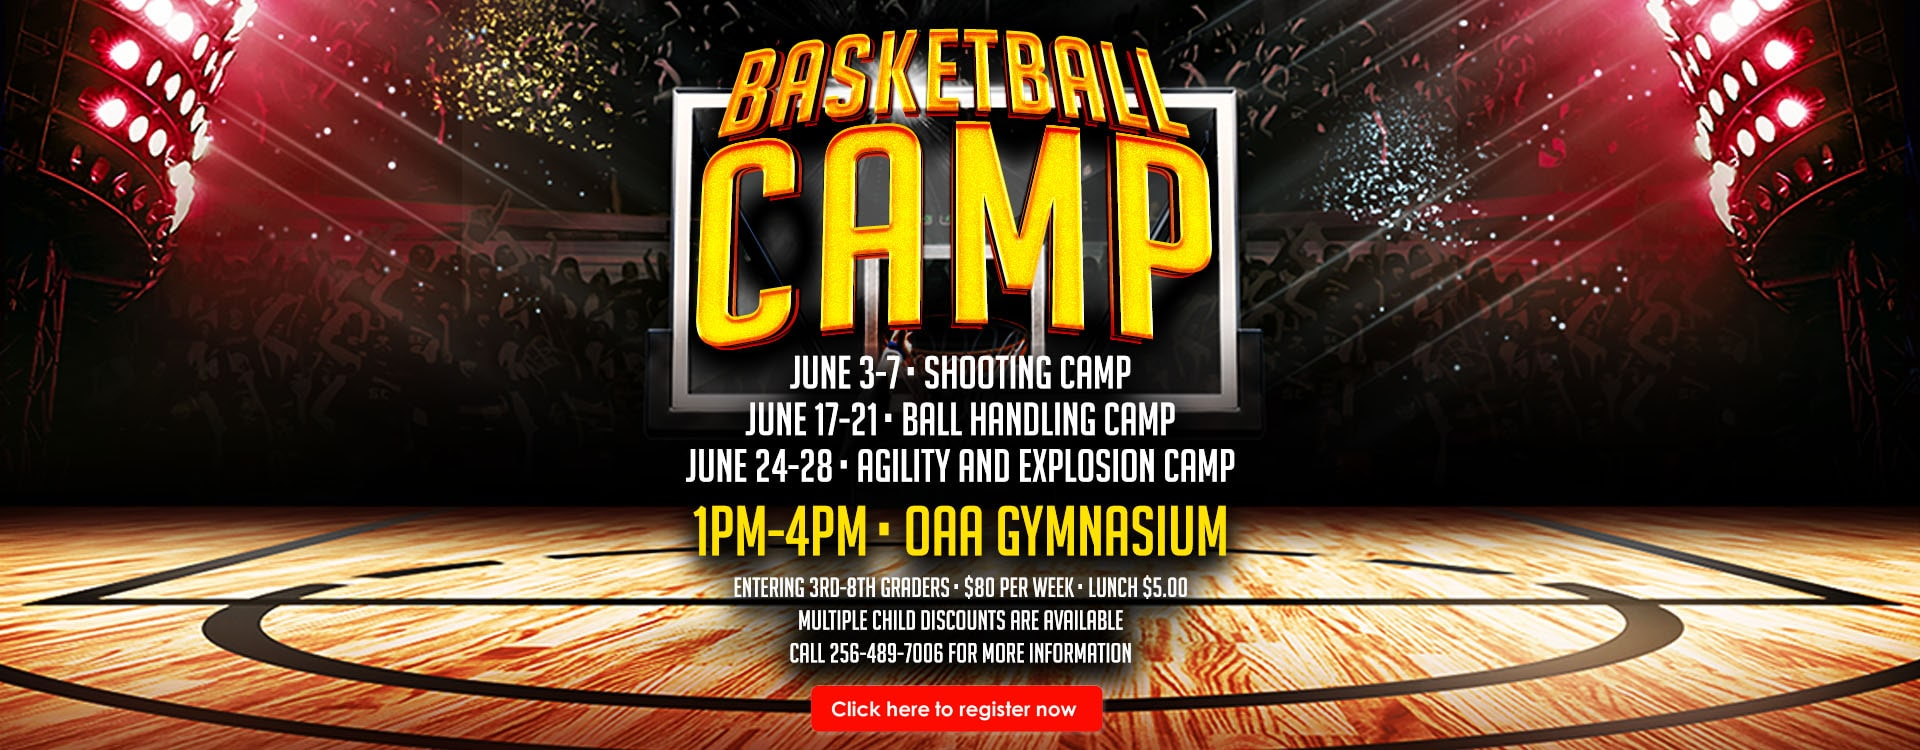 Basketball Camp – Web Banner